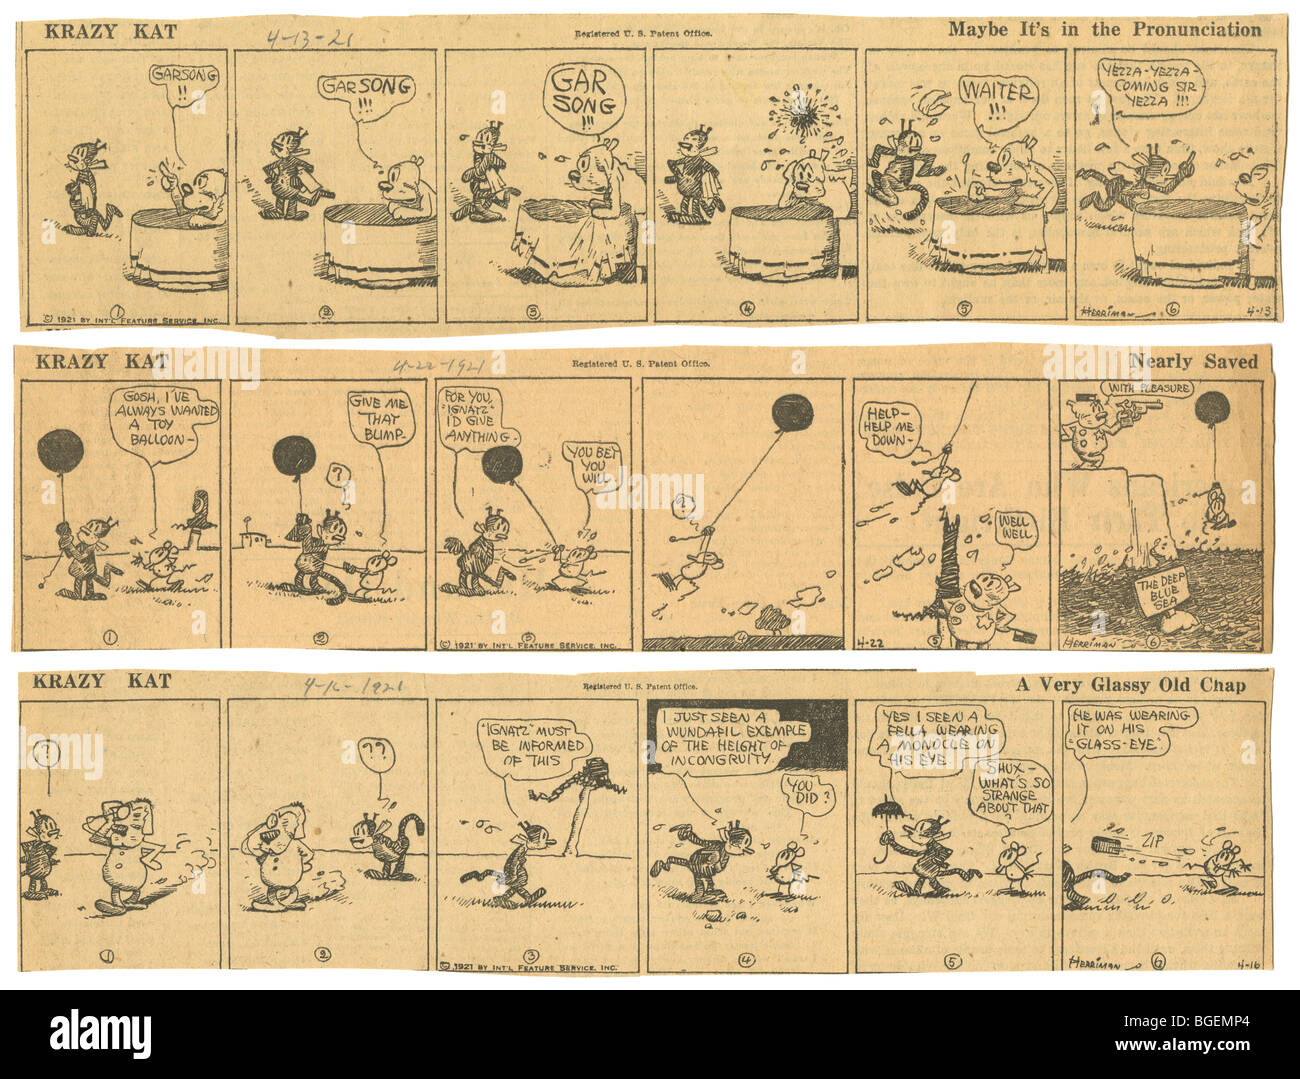 Three original April 1921 Krazy Kat daily comic strips by George Herriman. - Stock Image